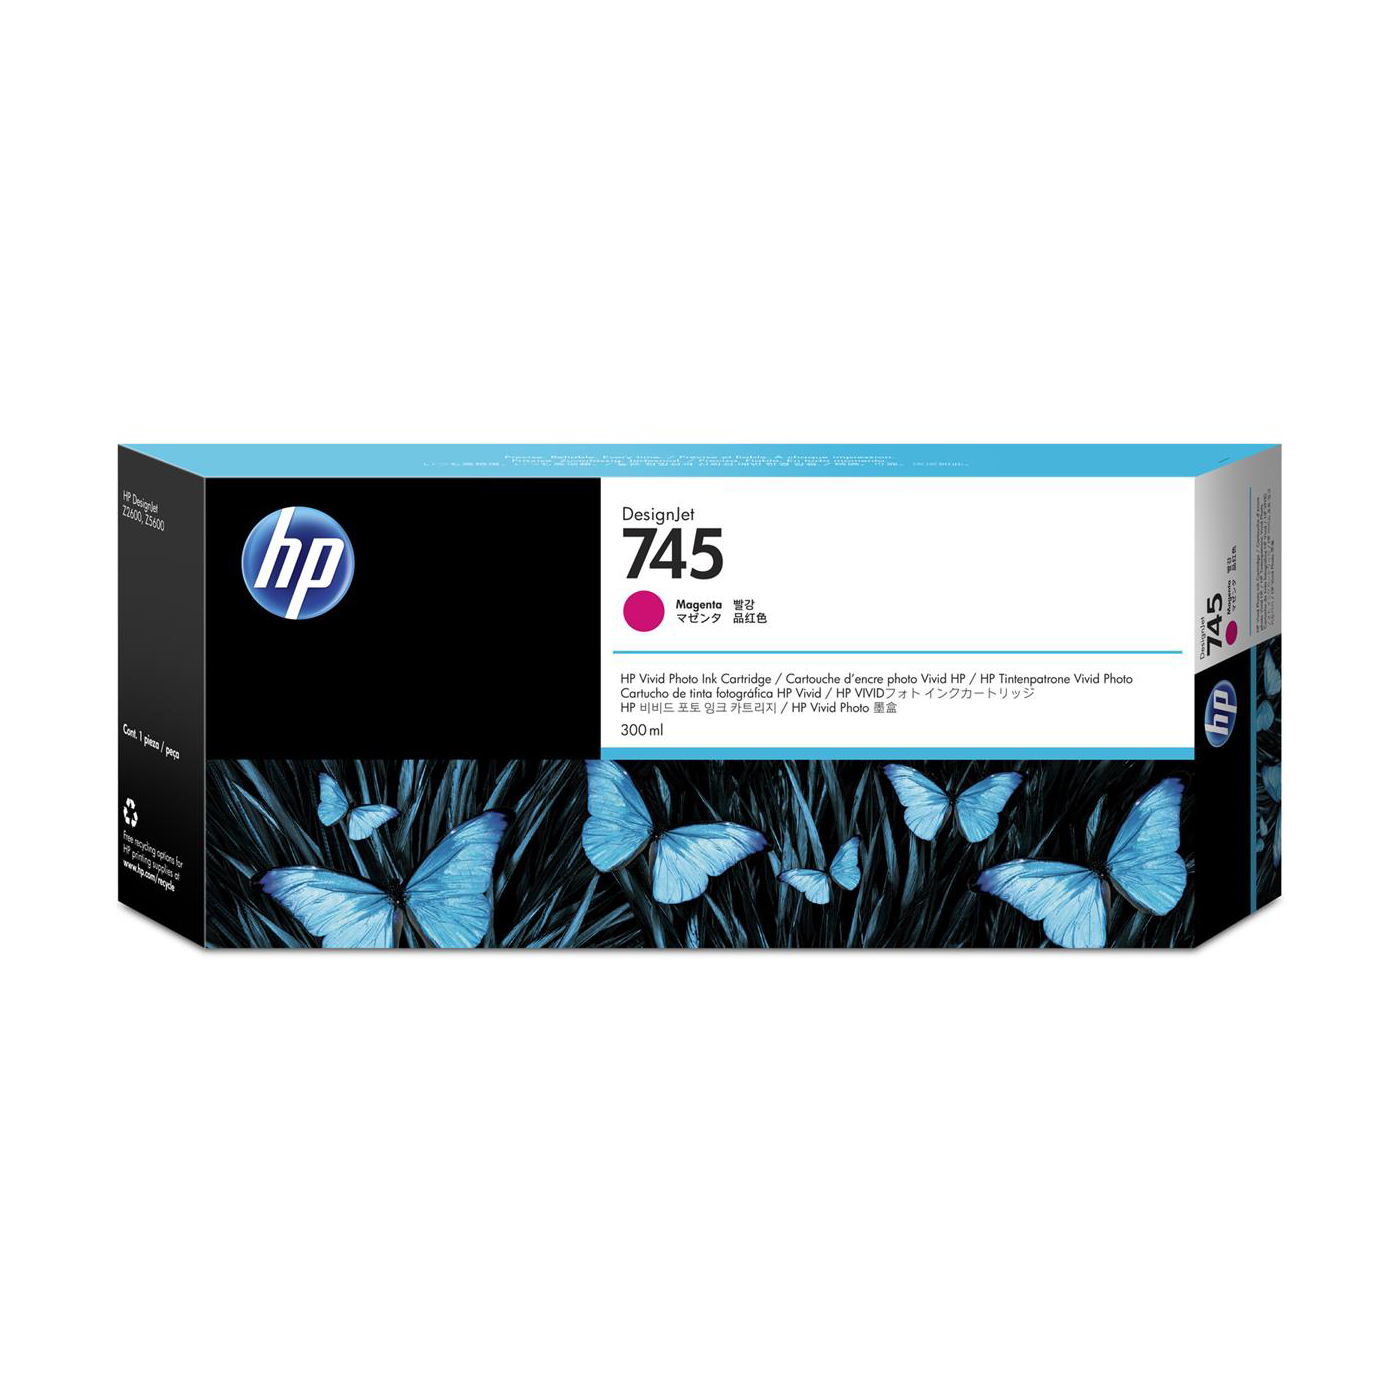 HP 745 300ml DesignJet Magenta Ink Cartridge F9K01A *3 to 5 Day Leadtime*